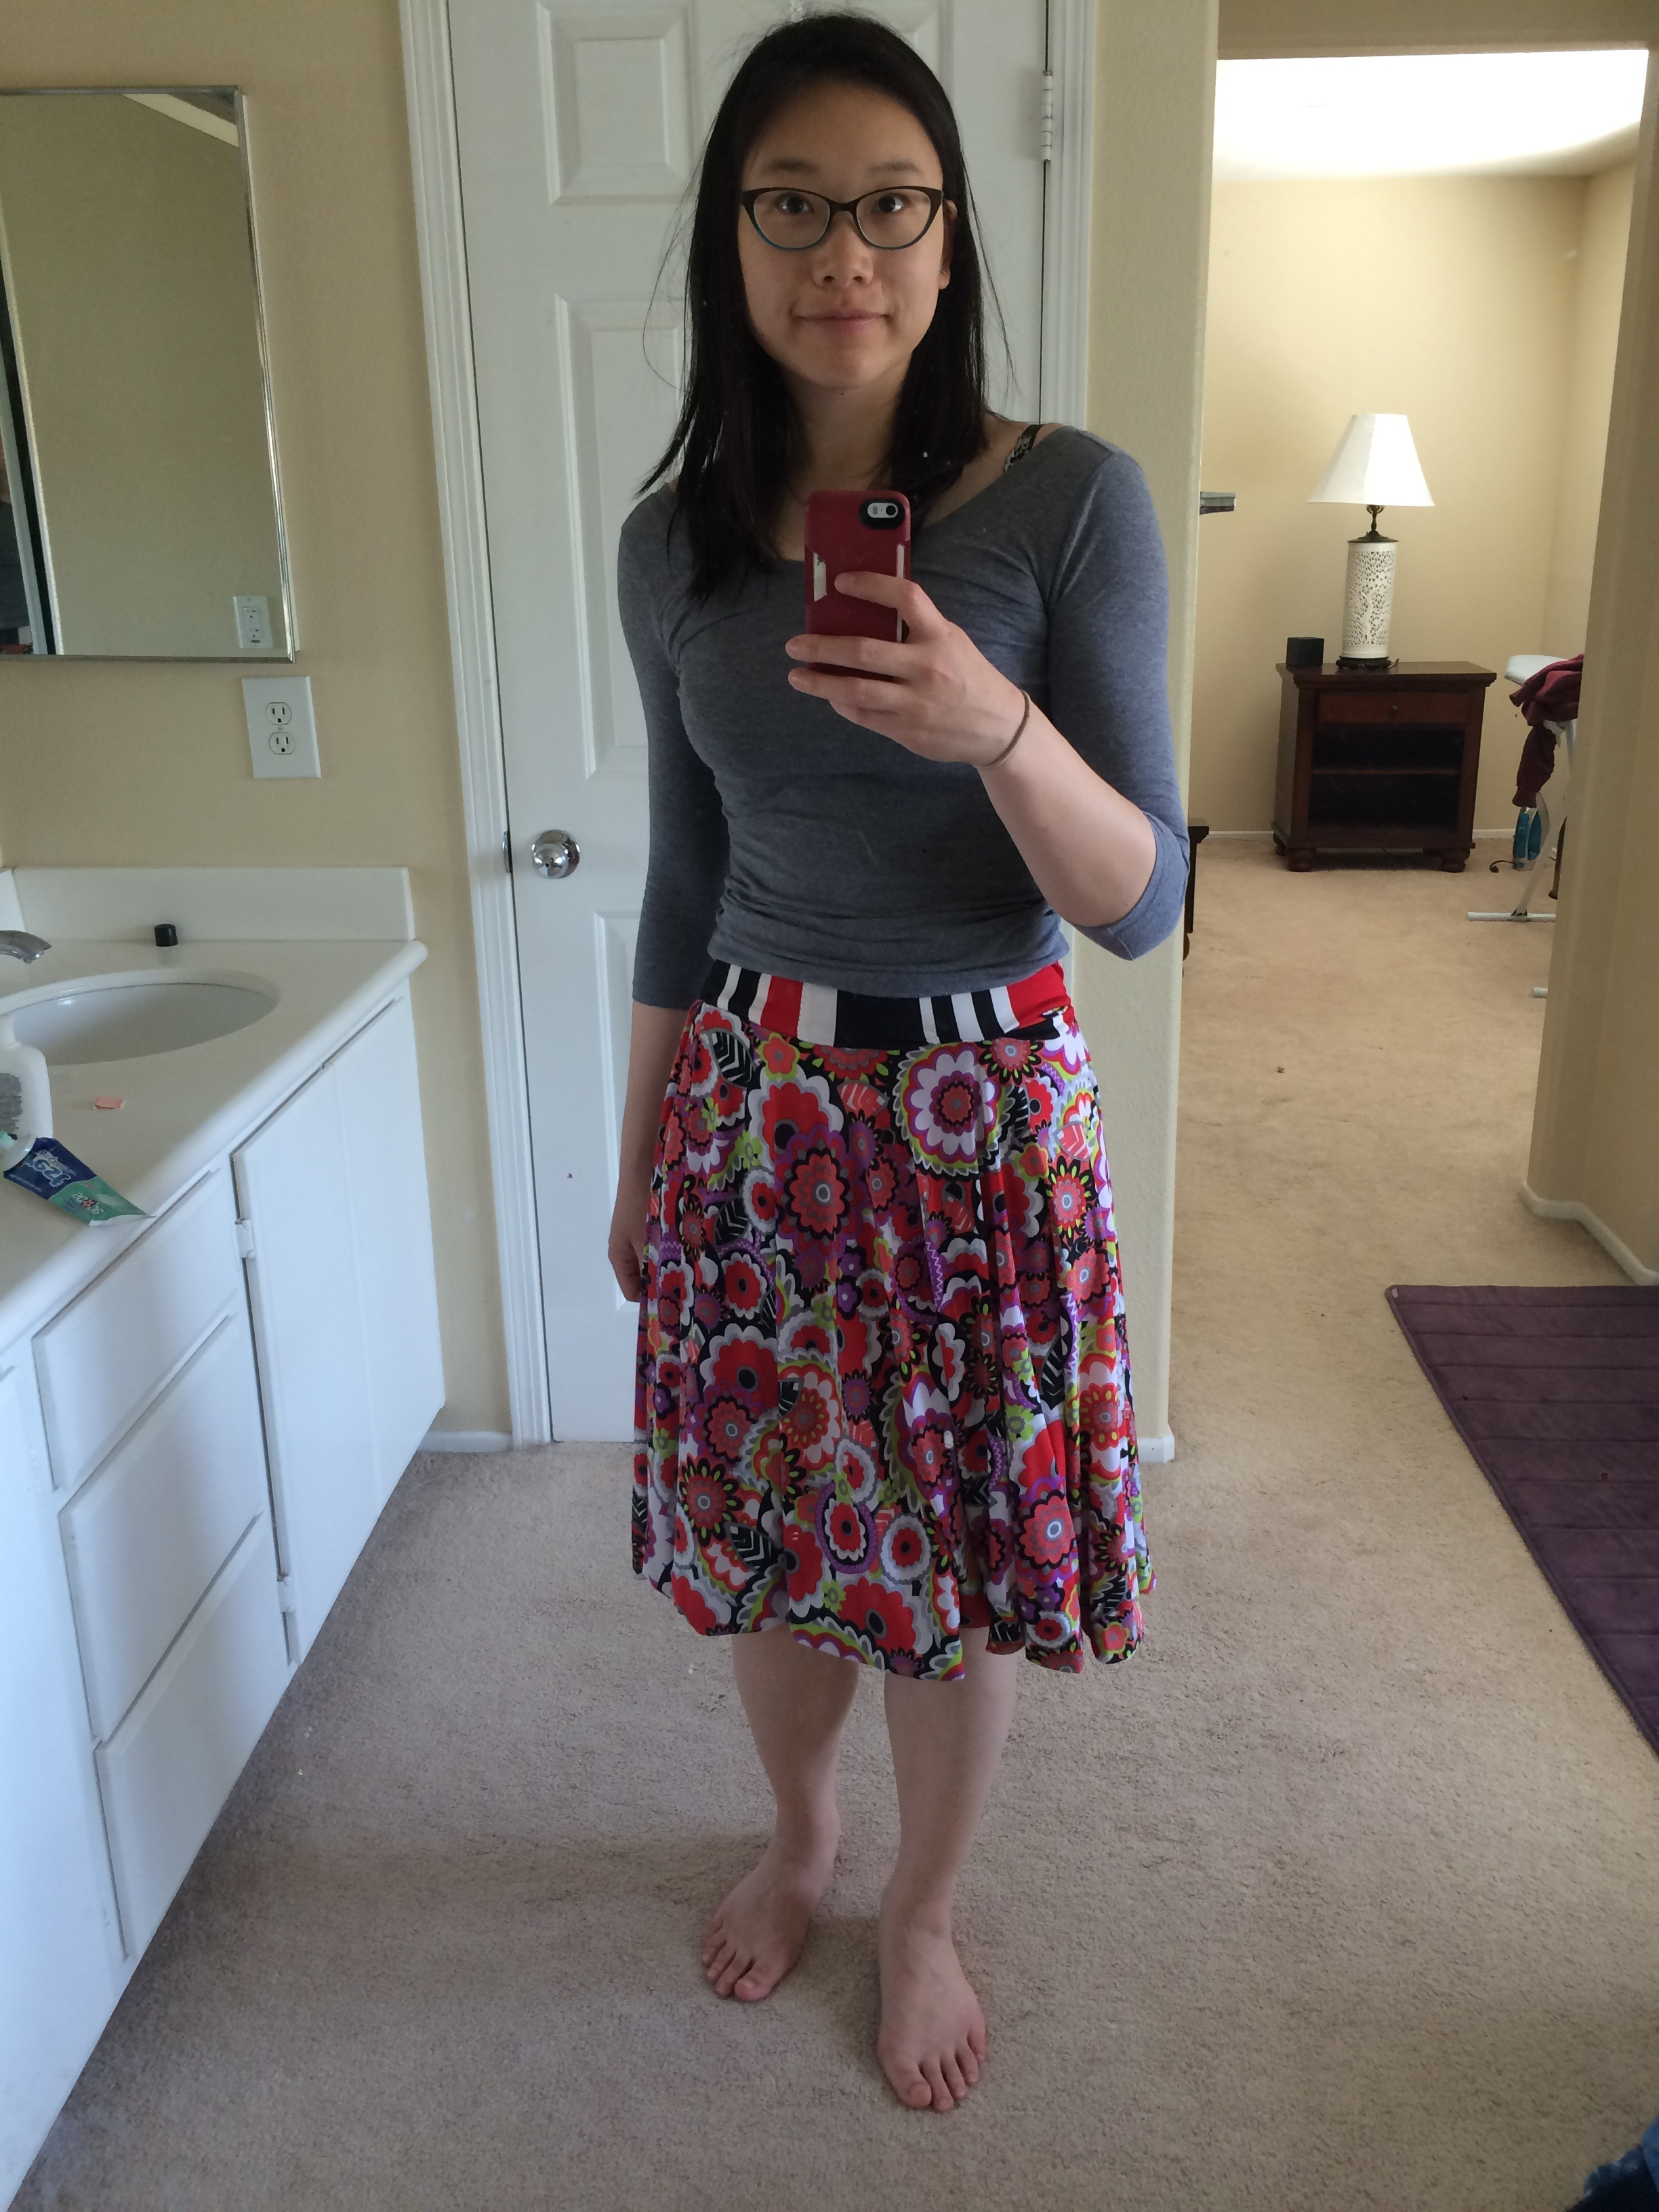 Floral side of the skirt with contrasting waistband